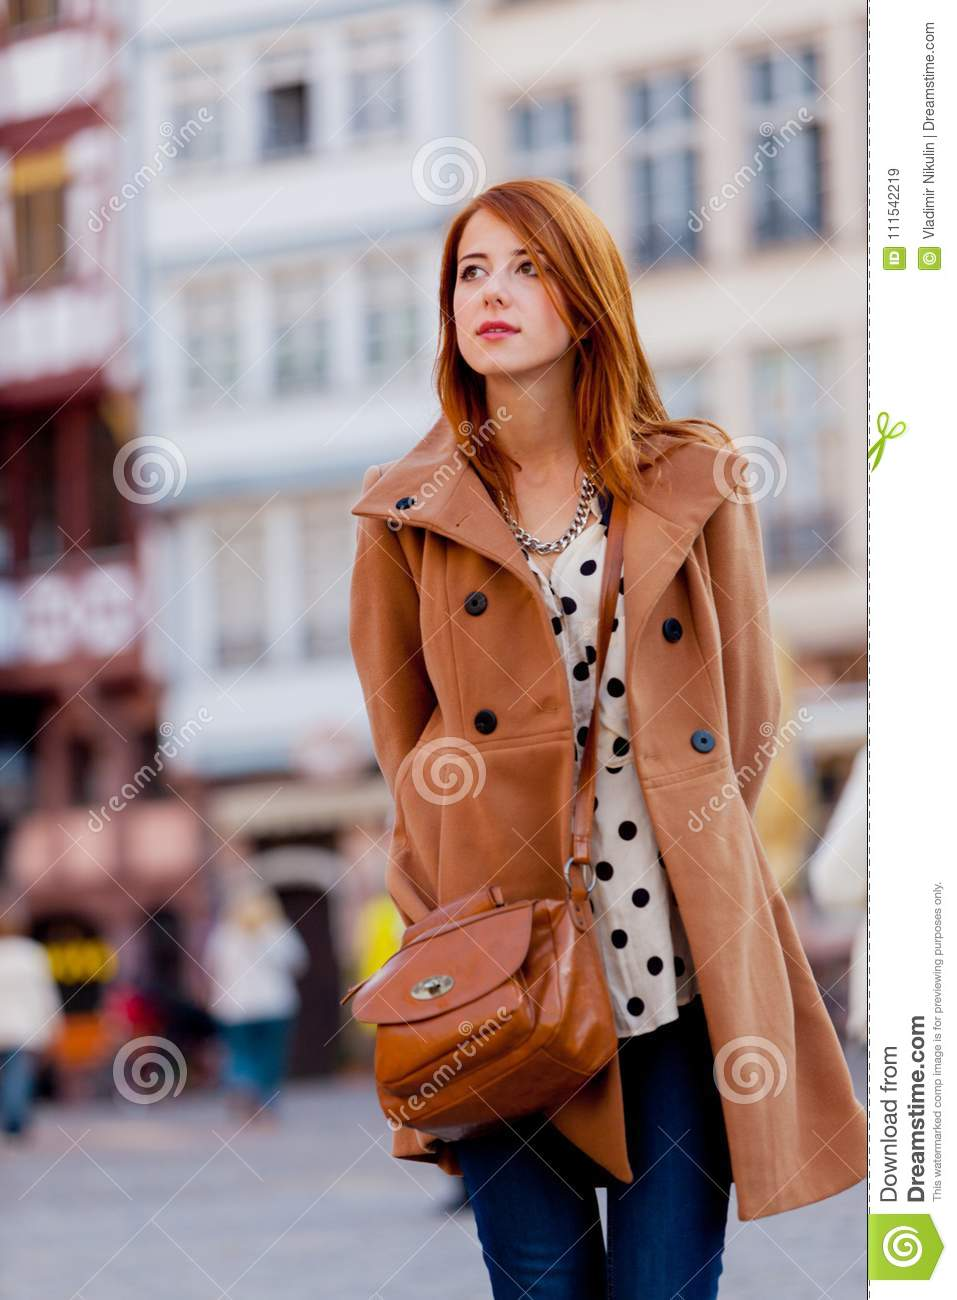 ec3aa82ab34 Woman In Coat Have A Rest On Frankfurt Streets Stock Image - Image ...